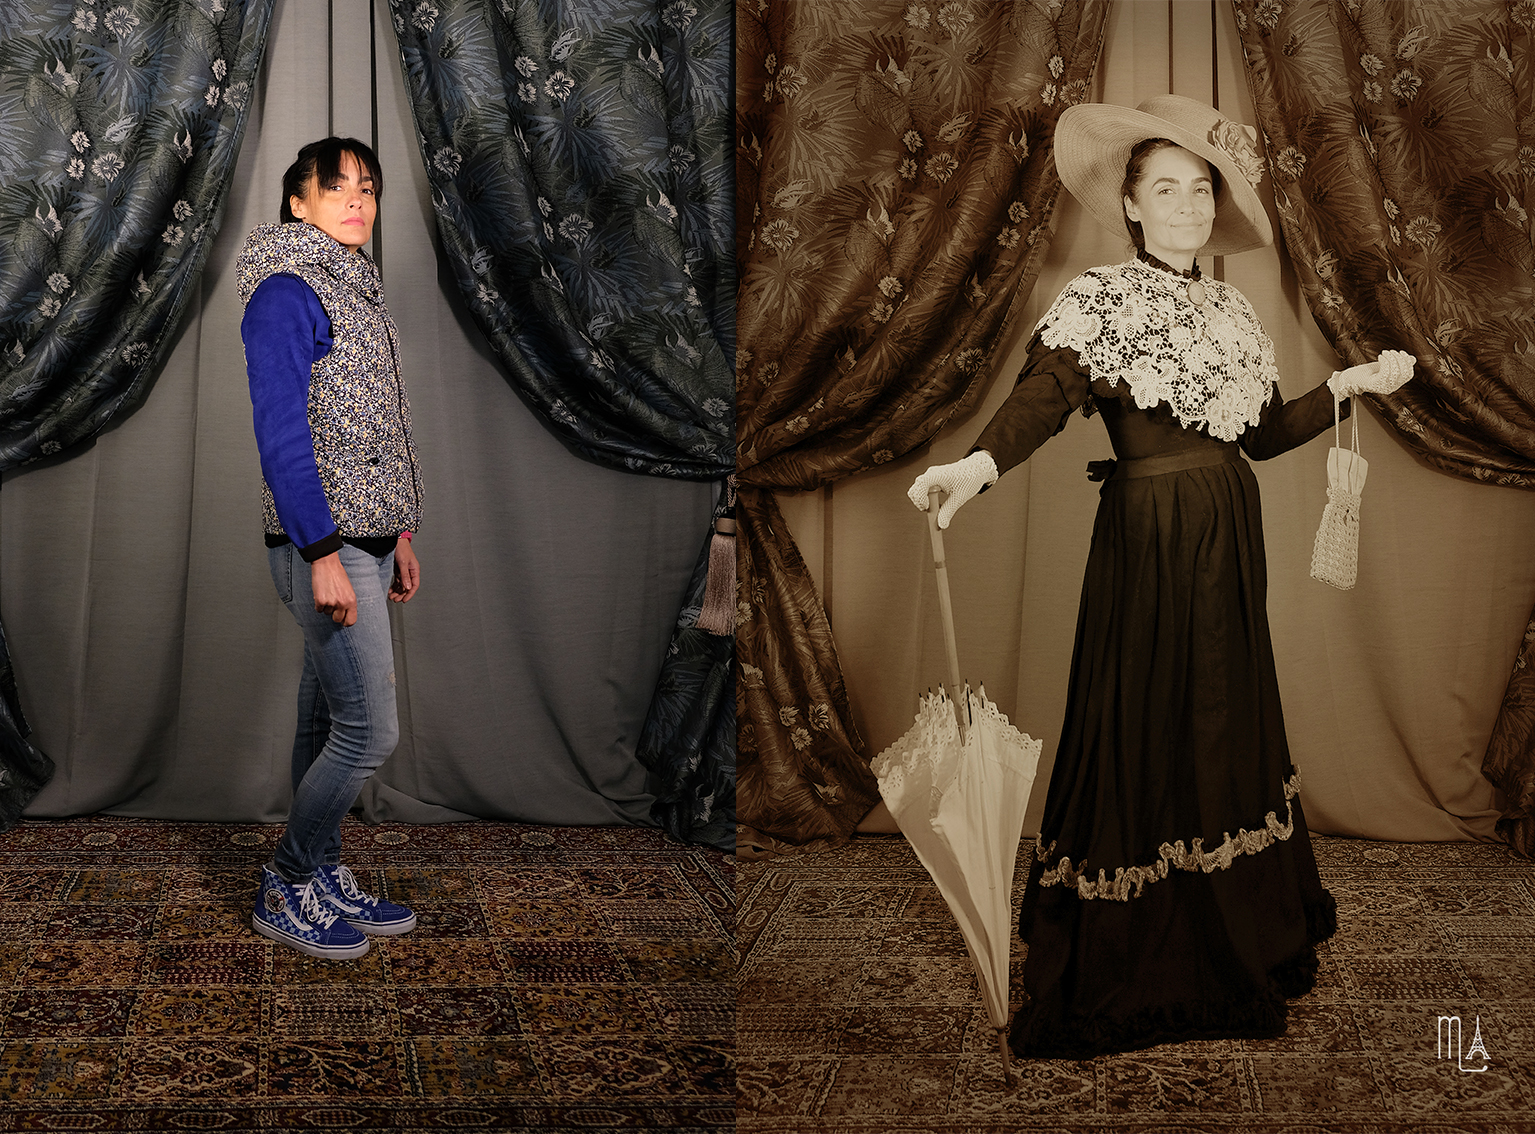 Shooting-photo-before-after-woman-1900